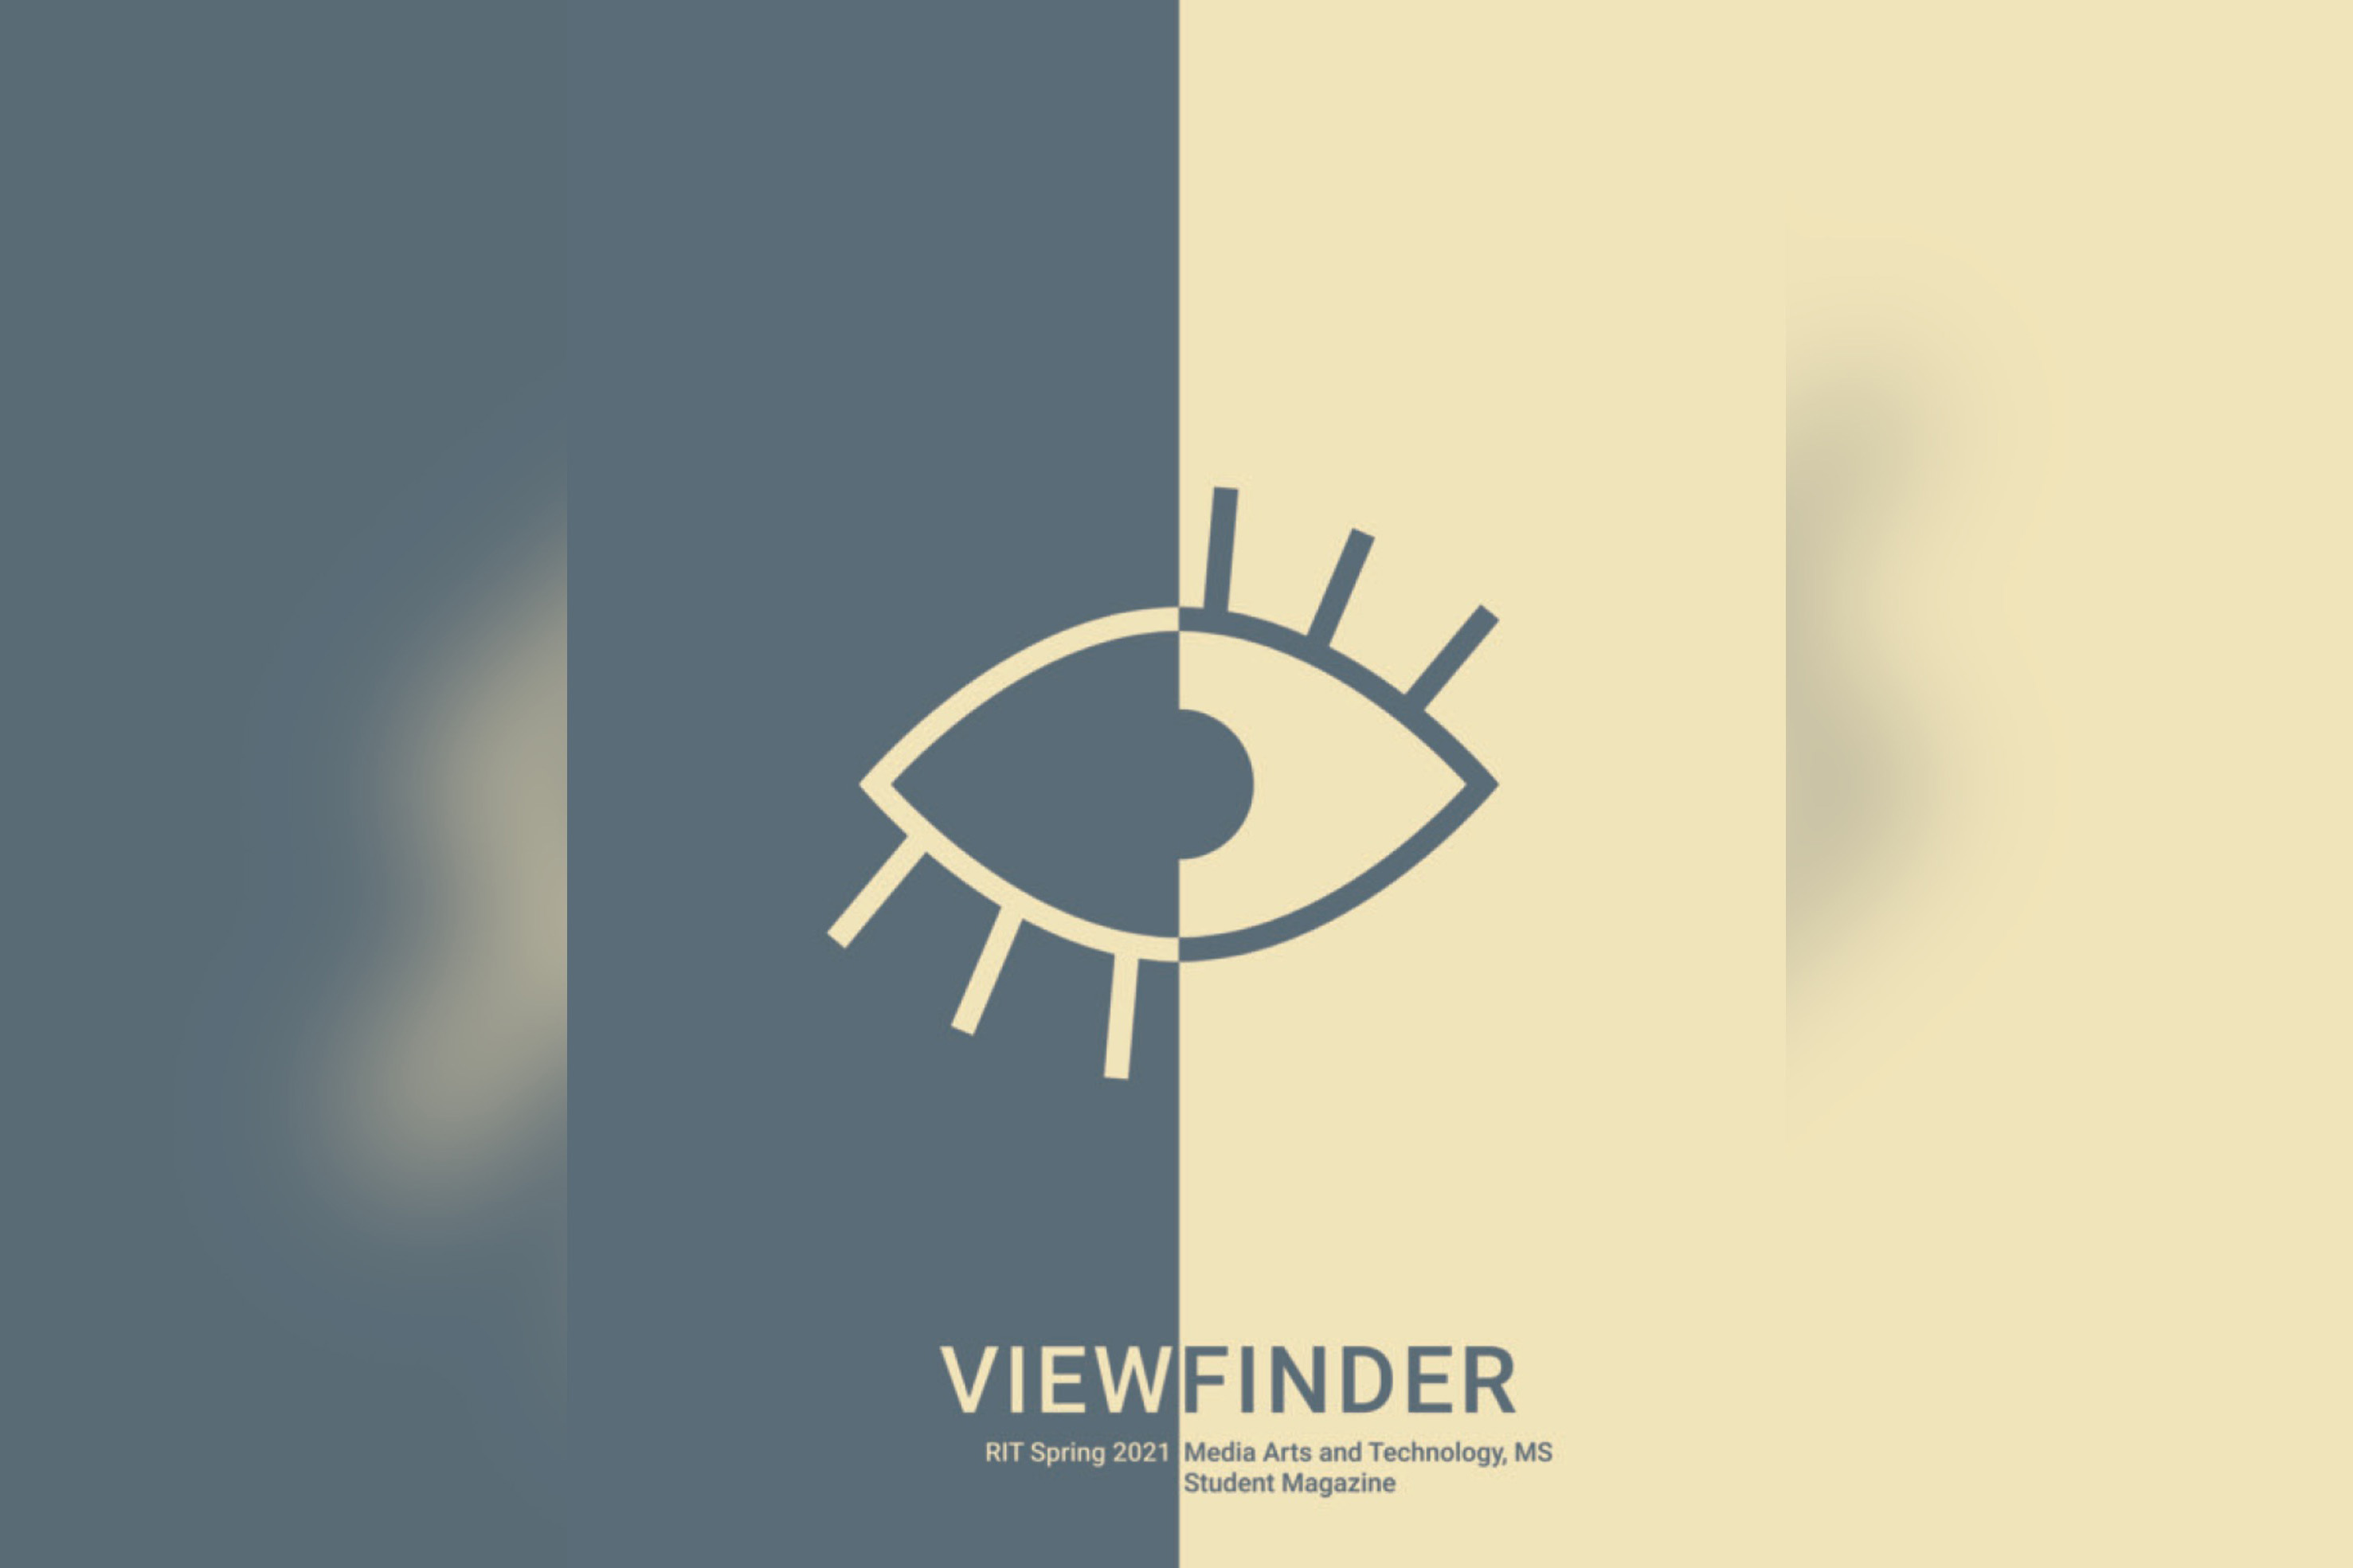 The cover of Viewfinder magazine.